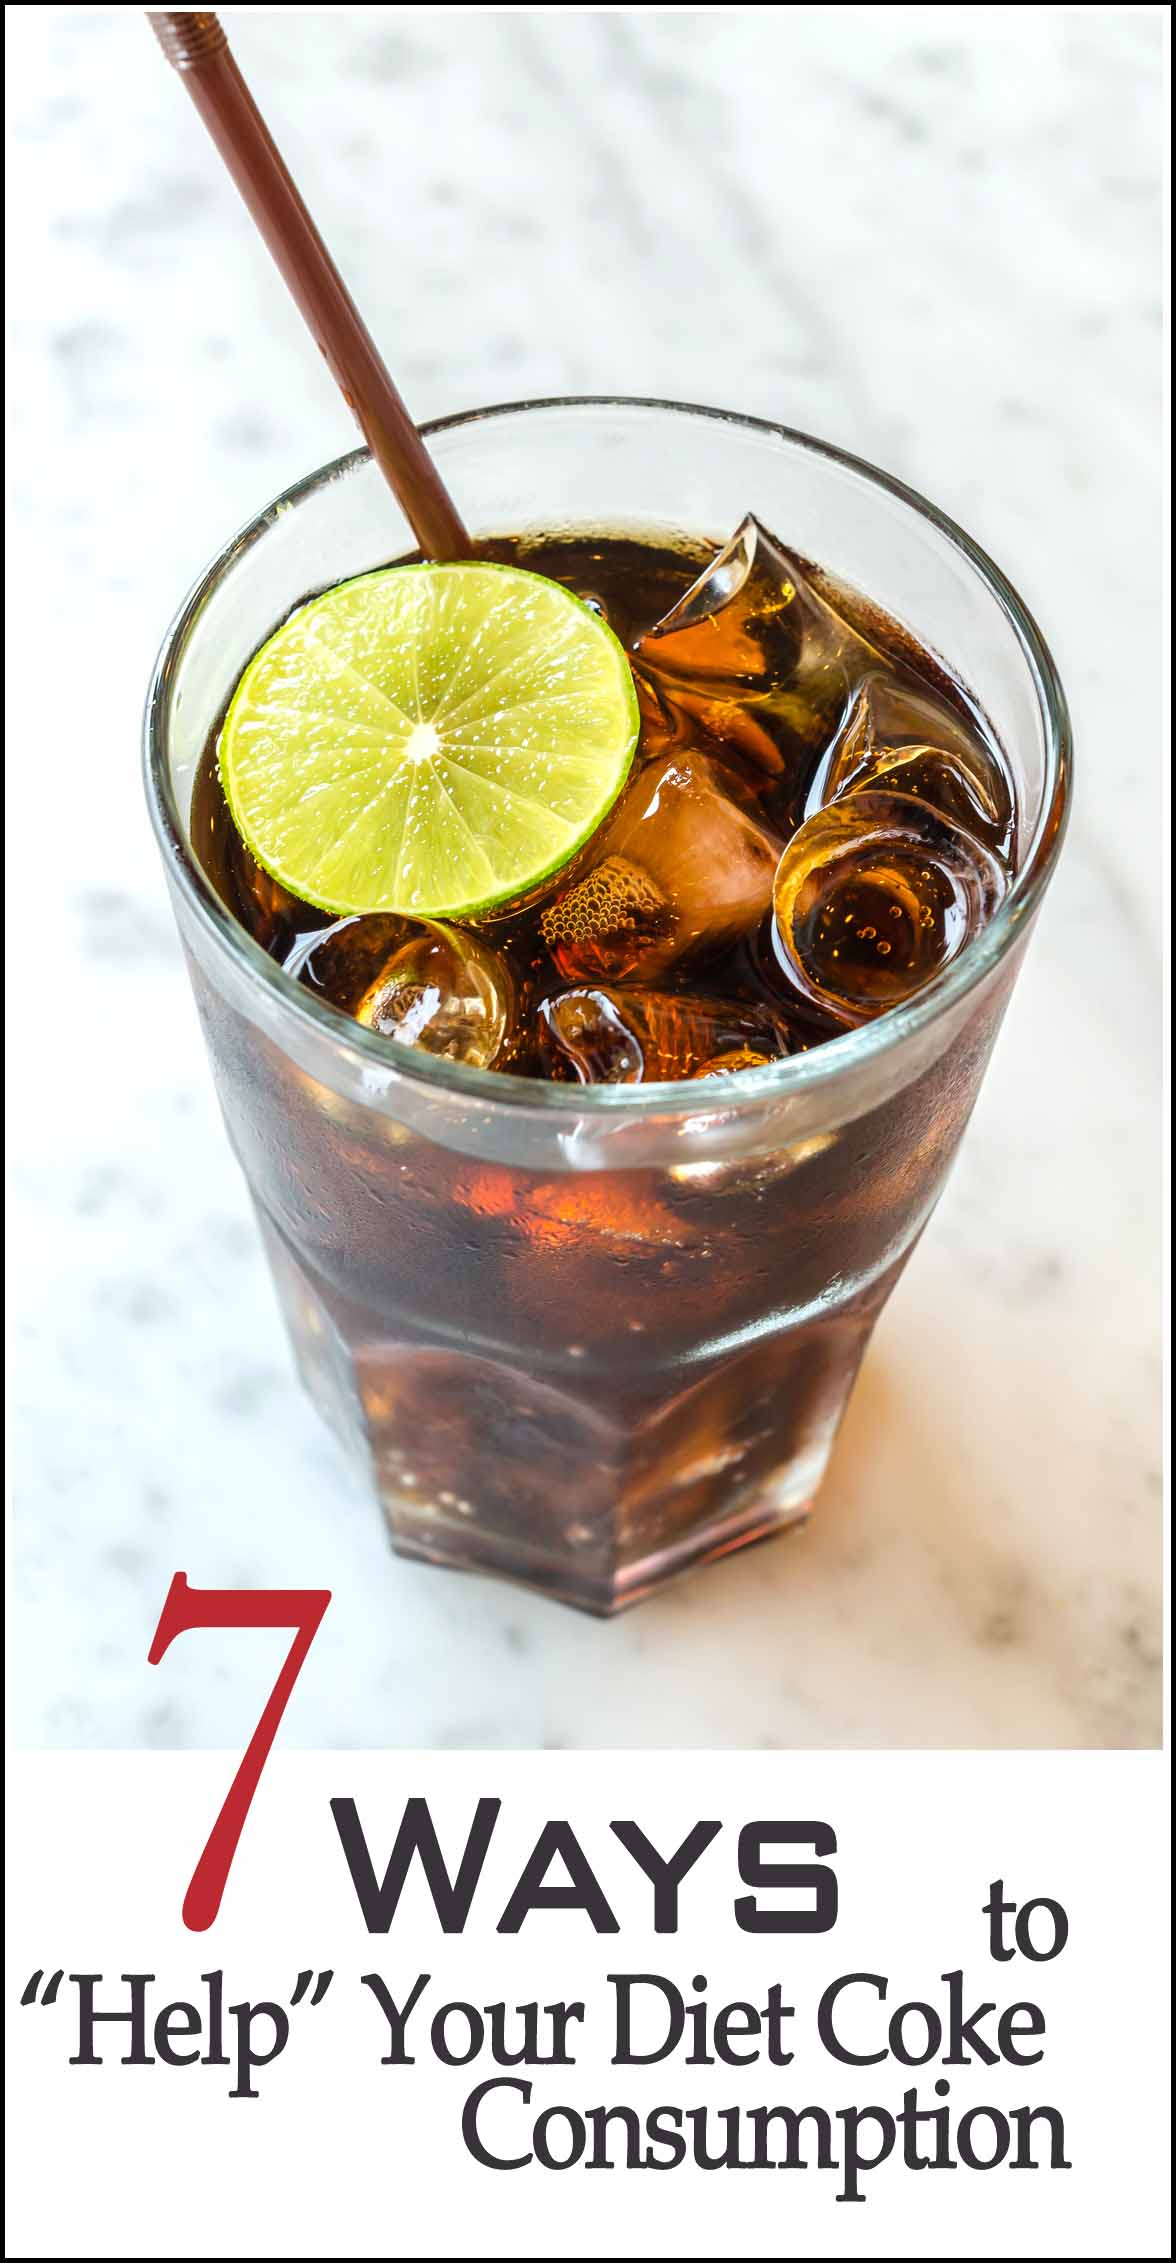 7 Ways to Help Your Diet Coke Consumption